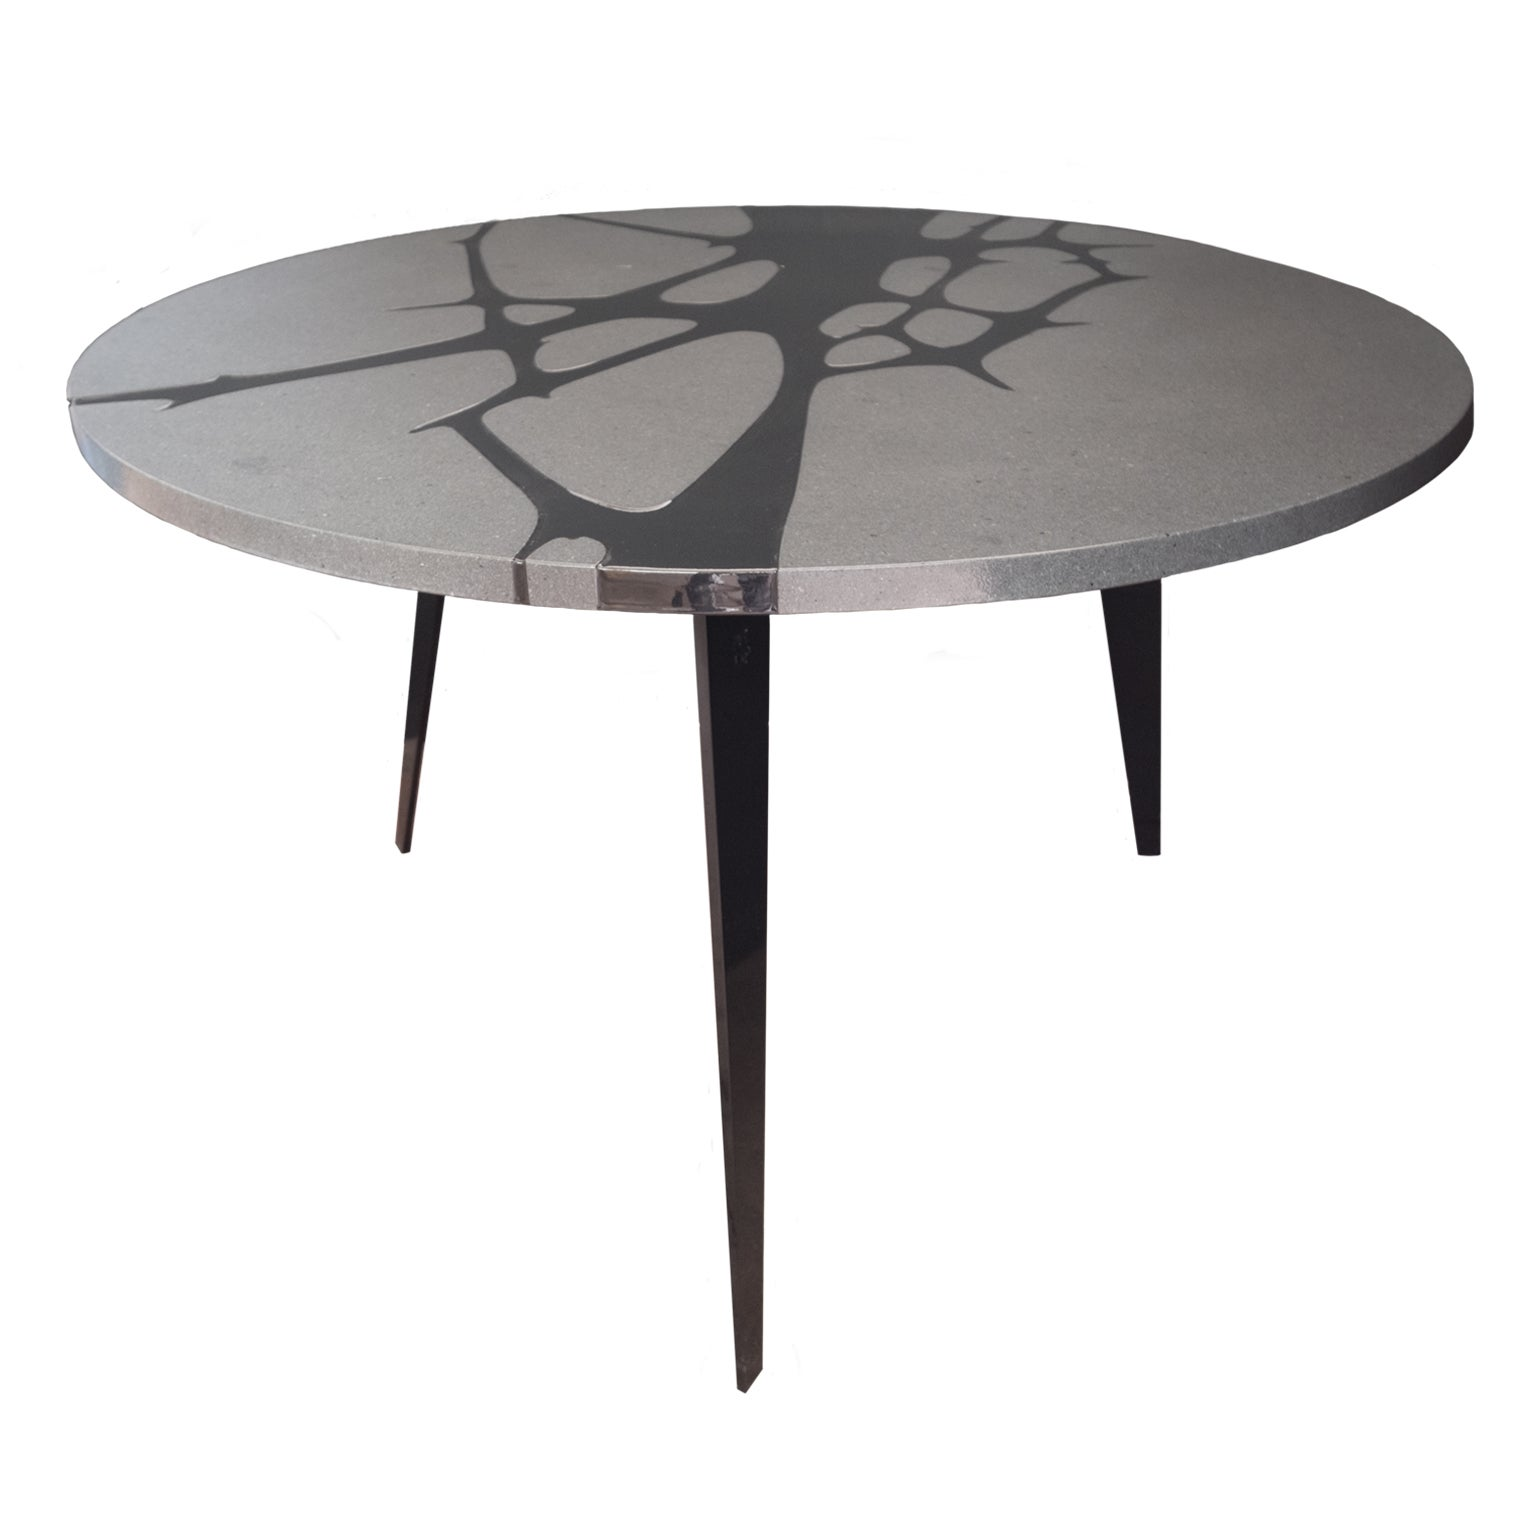 Round Table in Lava Stone and Steel, FilodiFumo 1st